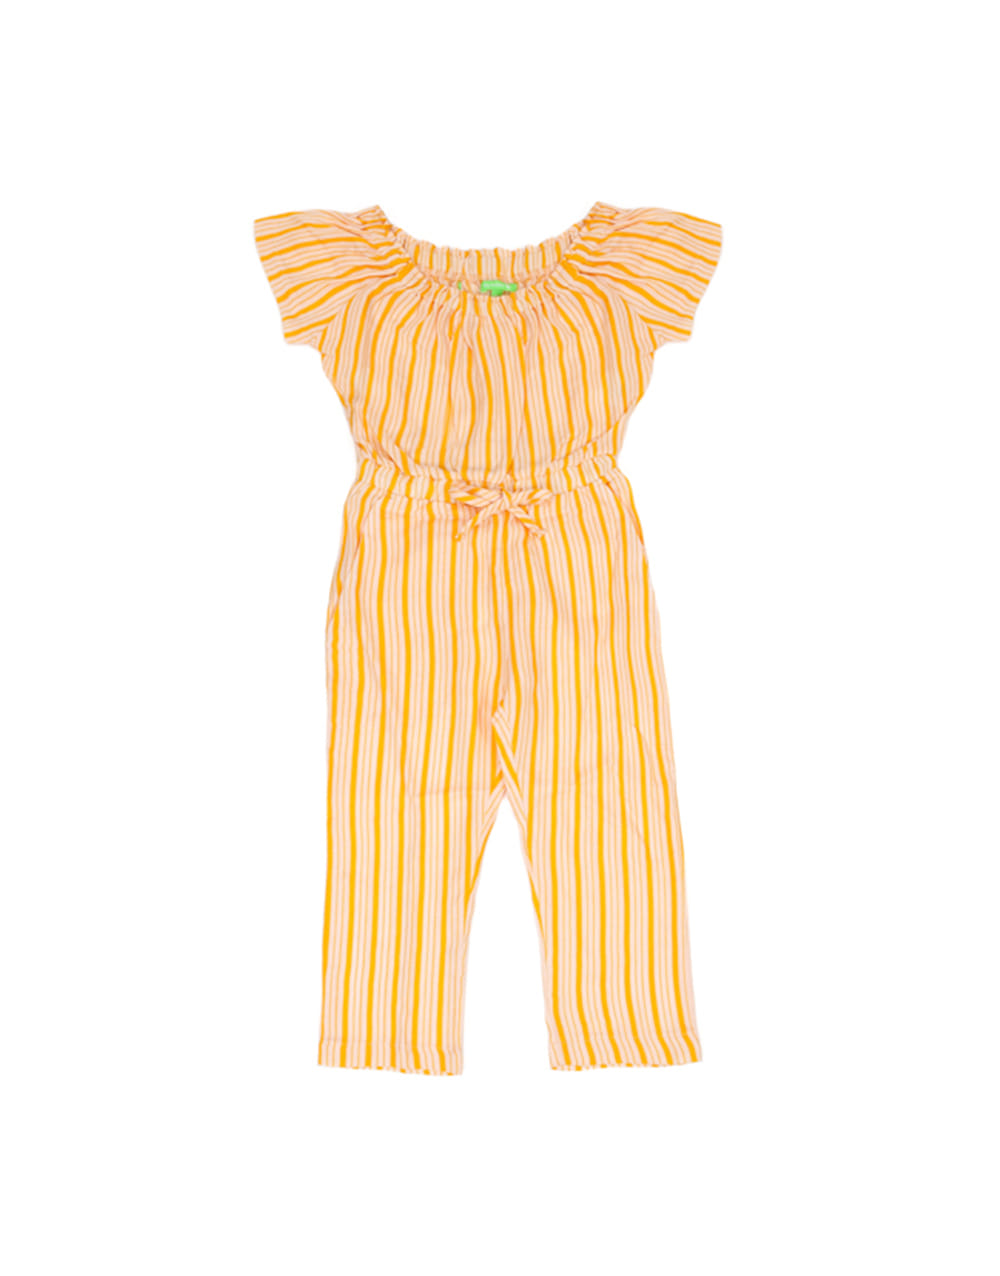 LILY BALOU   Eliza Jumpsuit  Juicy Stripes